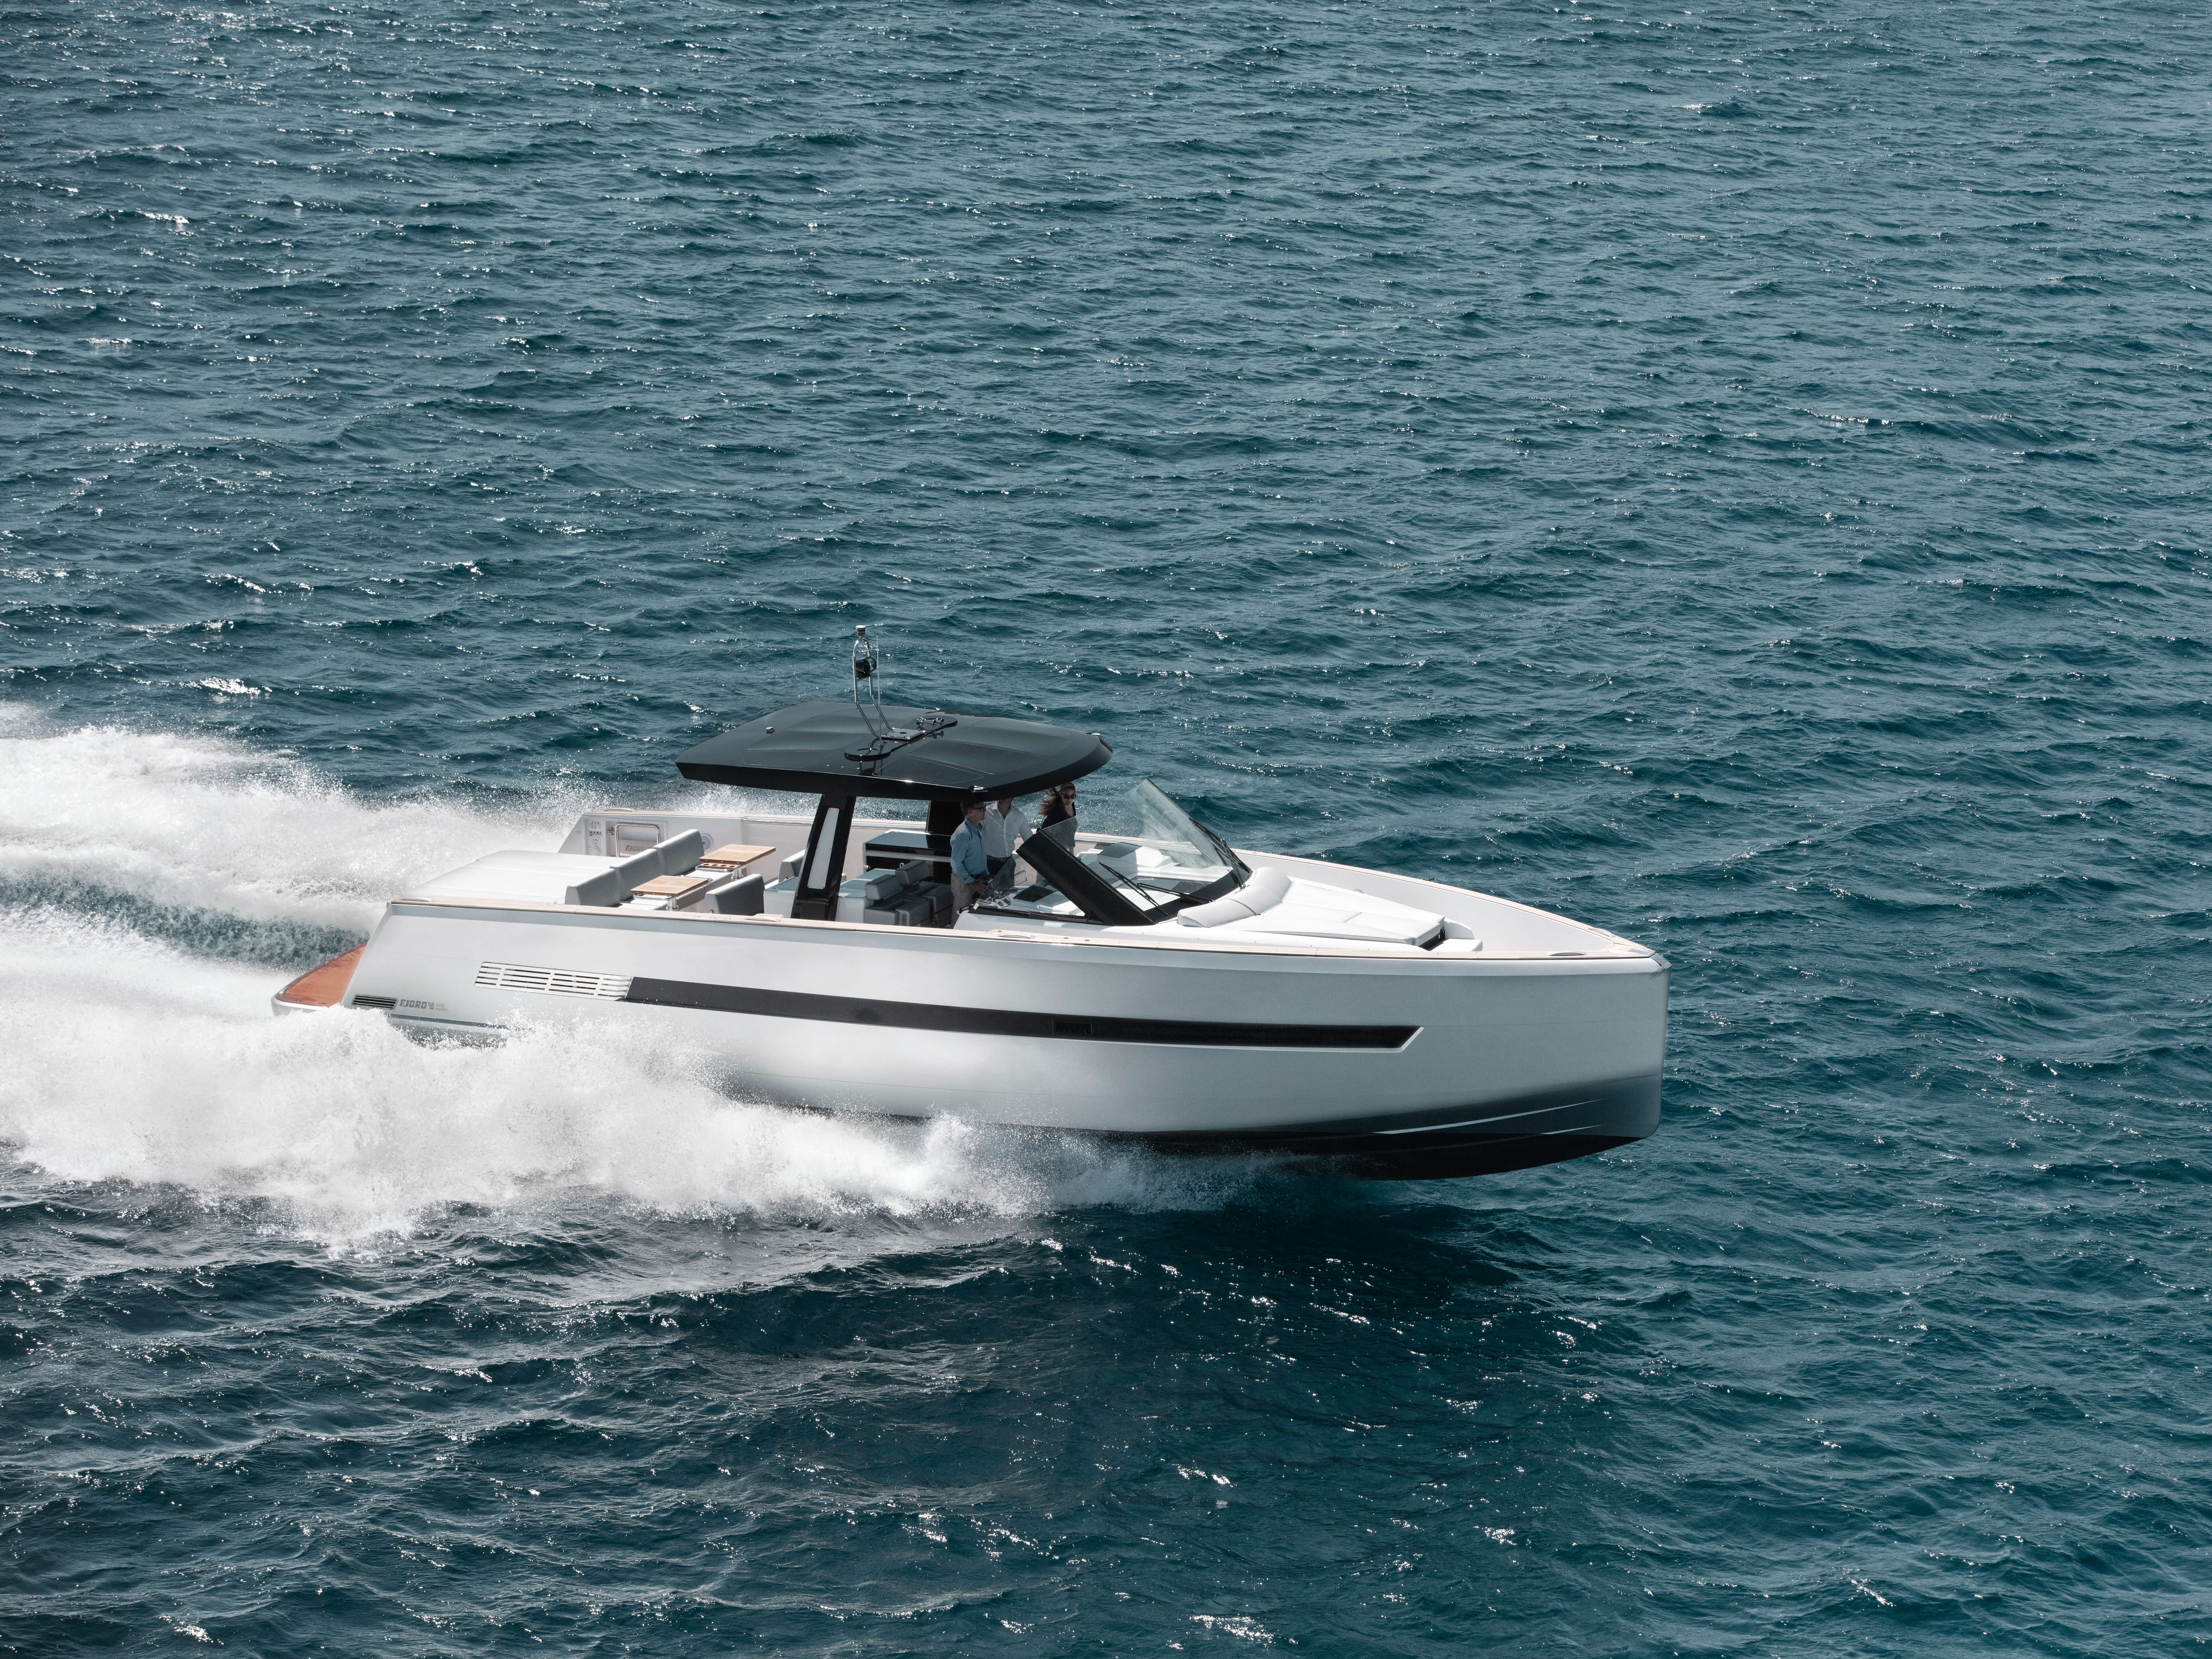 Fjord 48 open Exterior ride | T-top with skylights, foredeck and aft sunbed, painted hull | Fjord